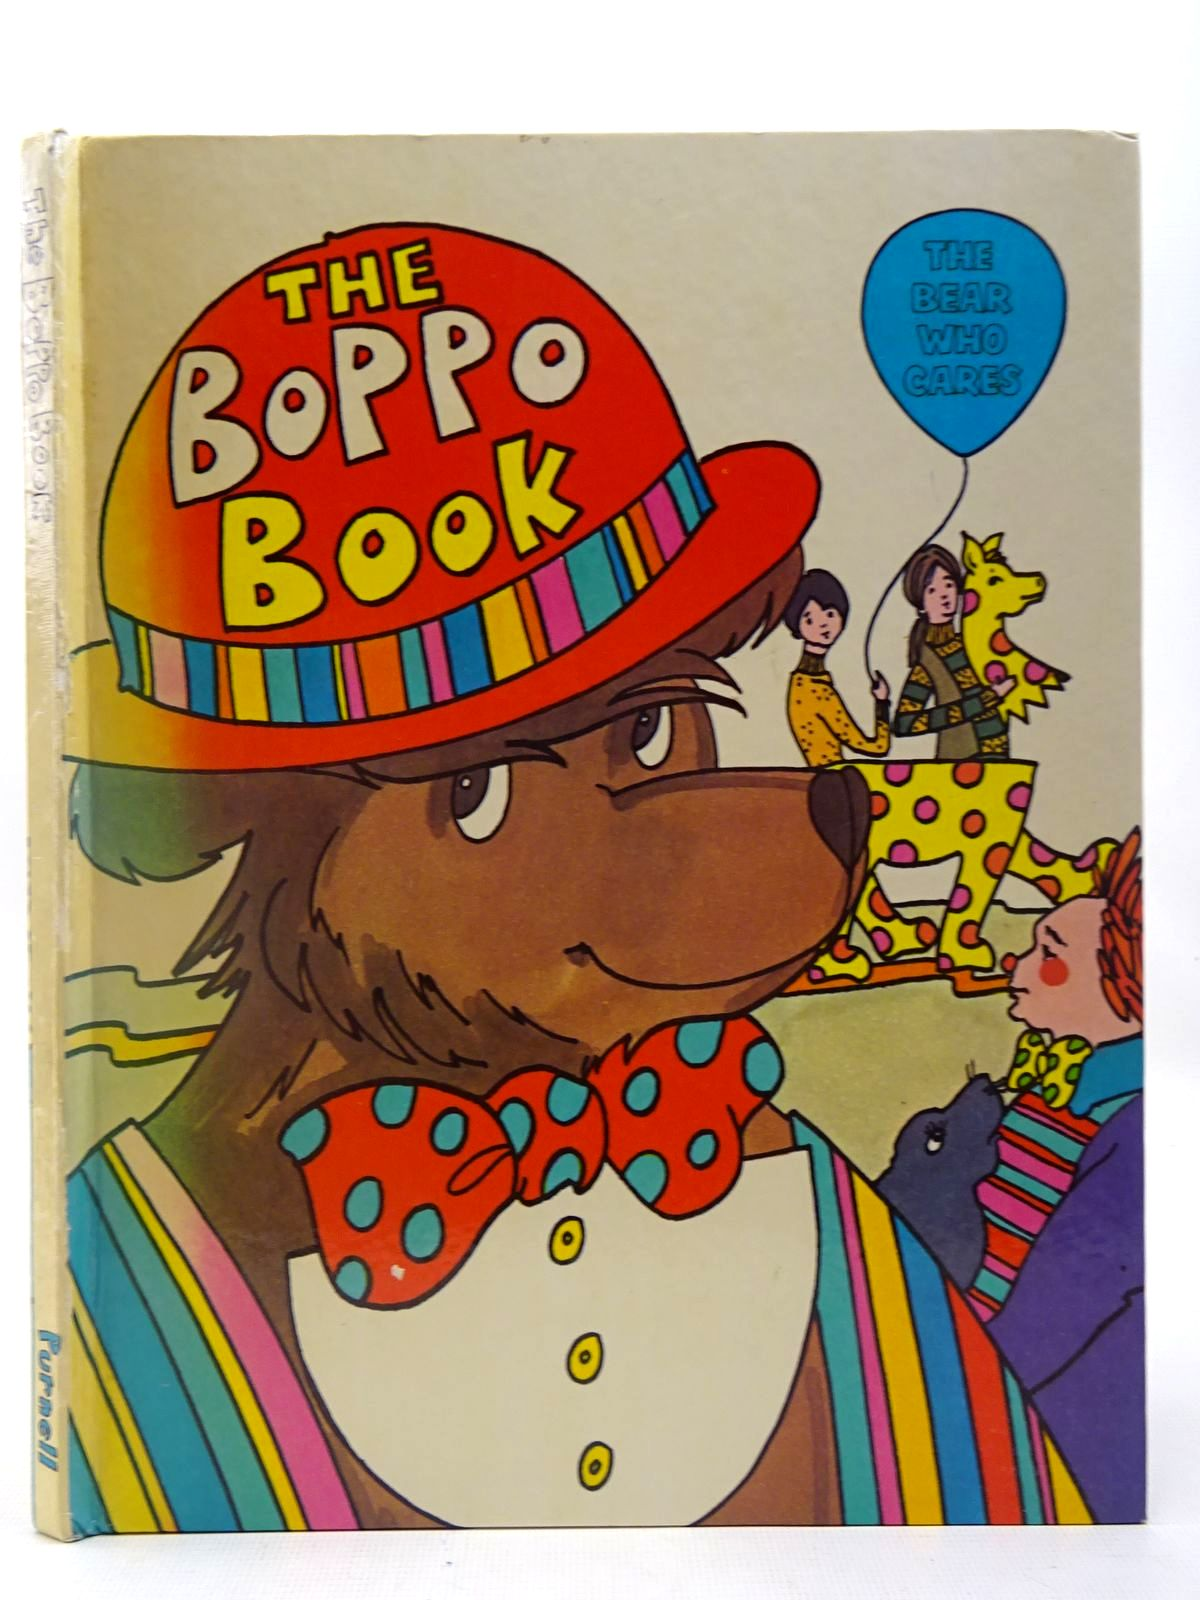 Photo of THE BOPPO BOOK written by Cotton, Robert illustrated by Cameron, published by Purnell (STOCK CODE: 2127213)  for sale by Stella & Rose's Books